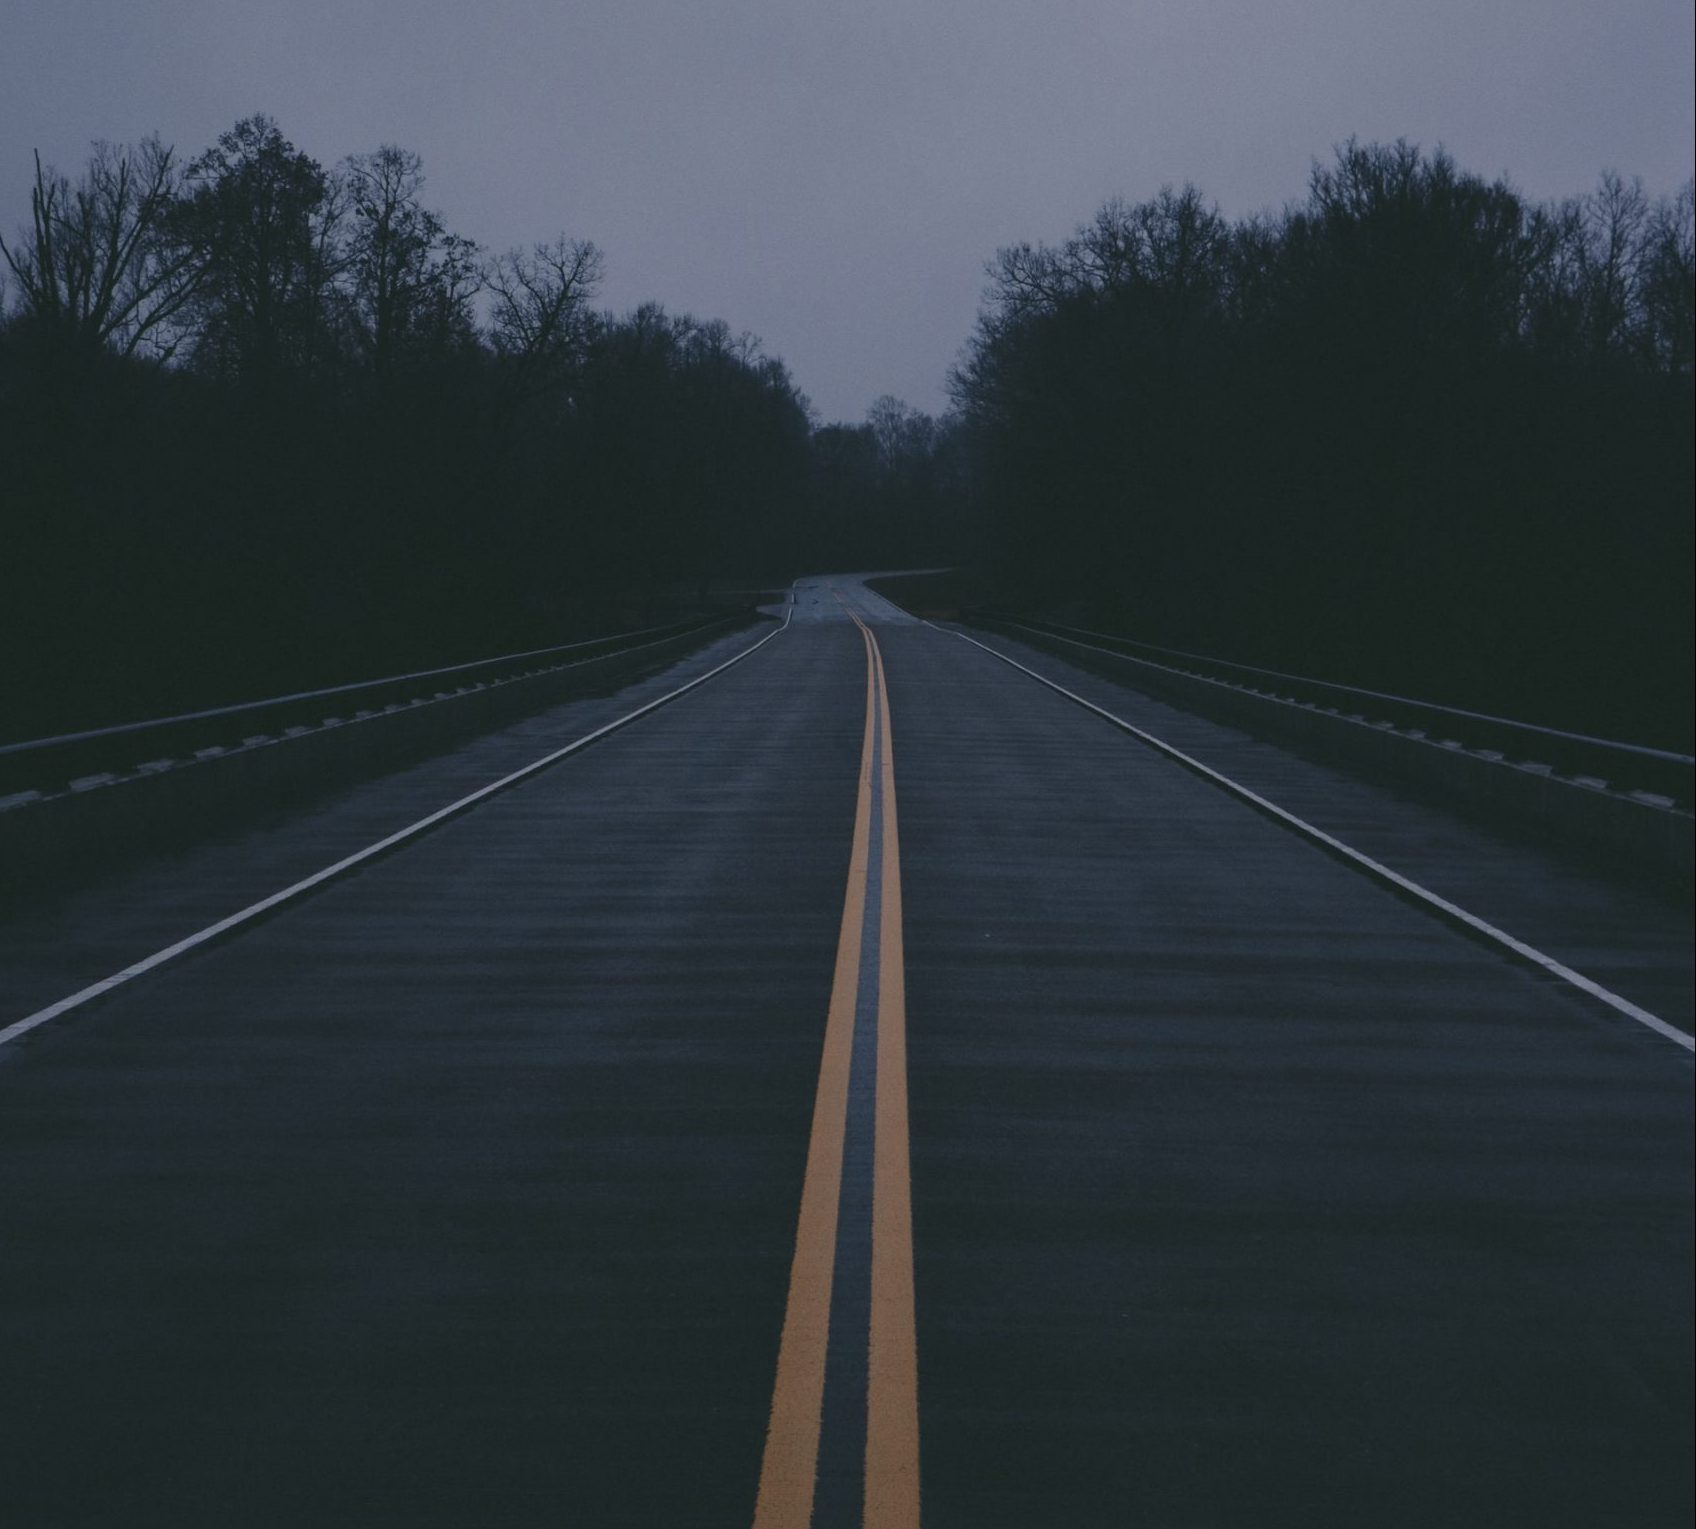 https://unsplash.com/photos/b_UtP7rm_po